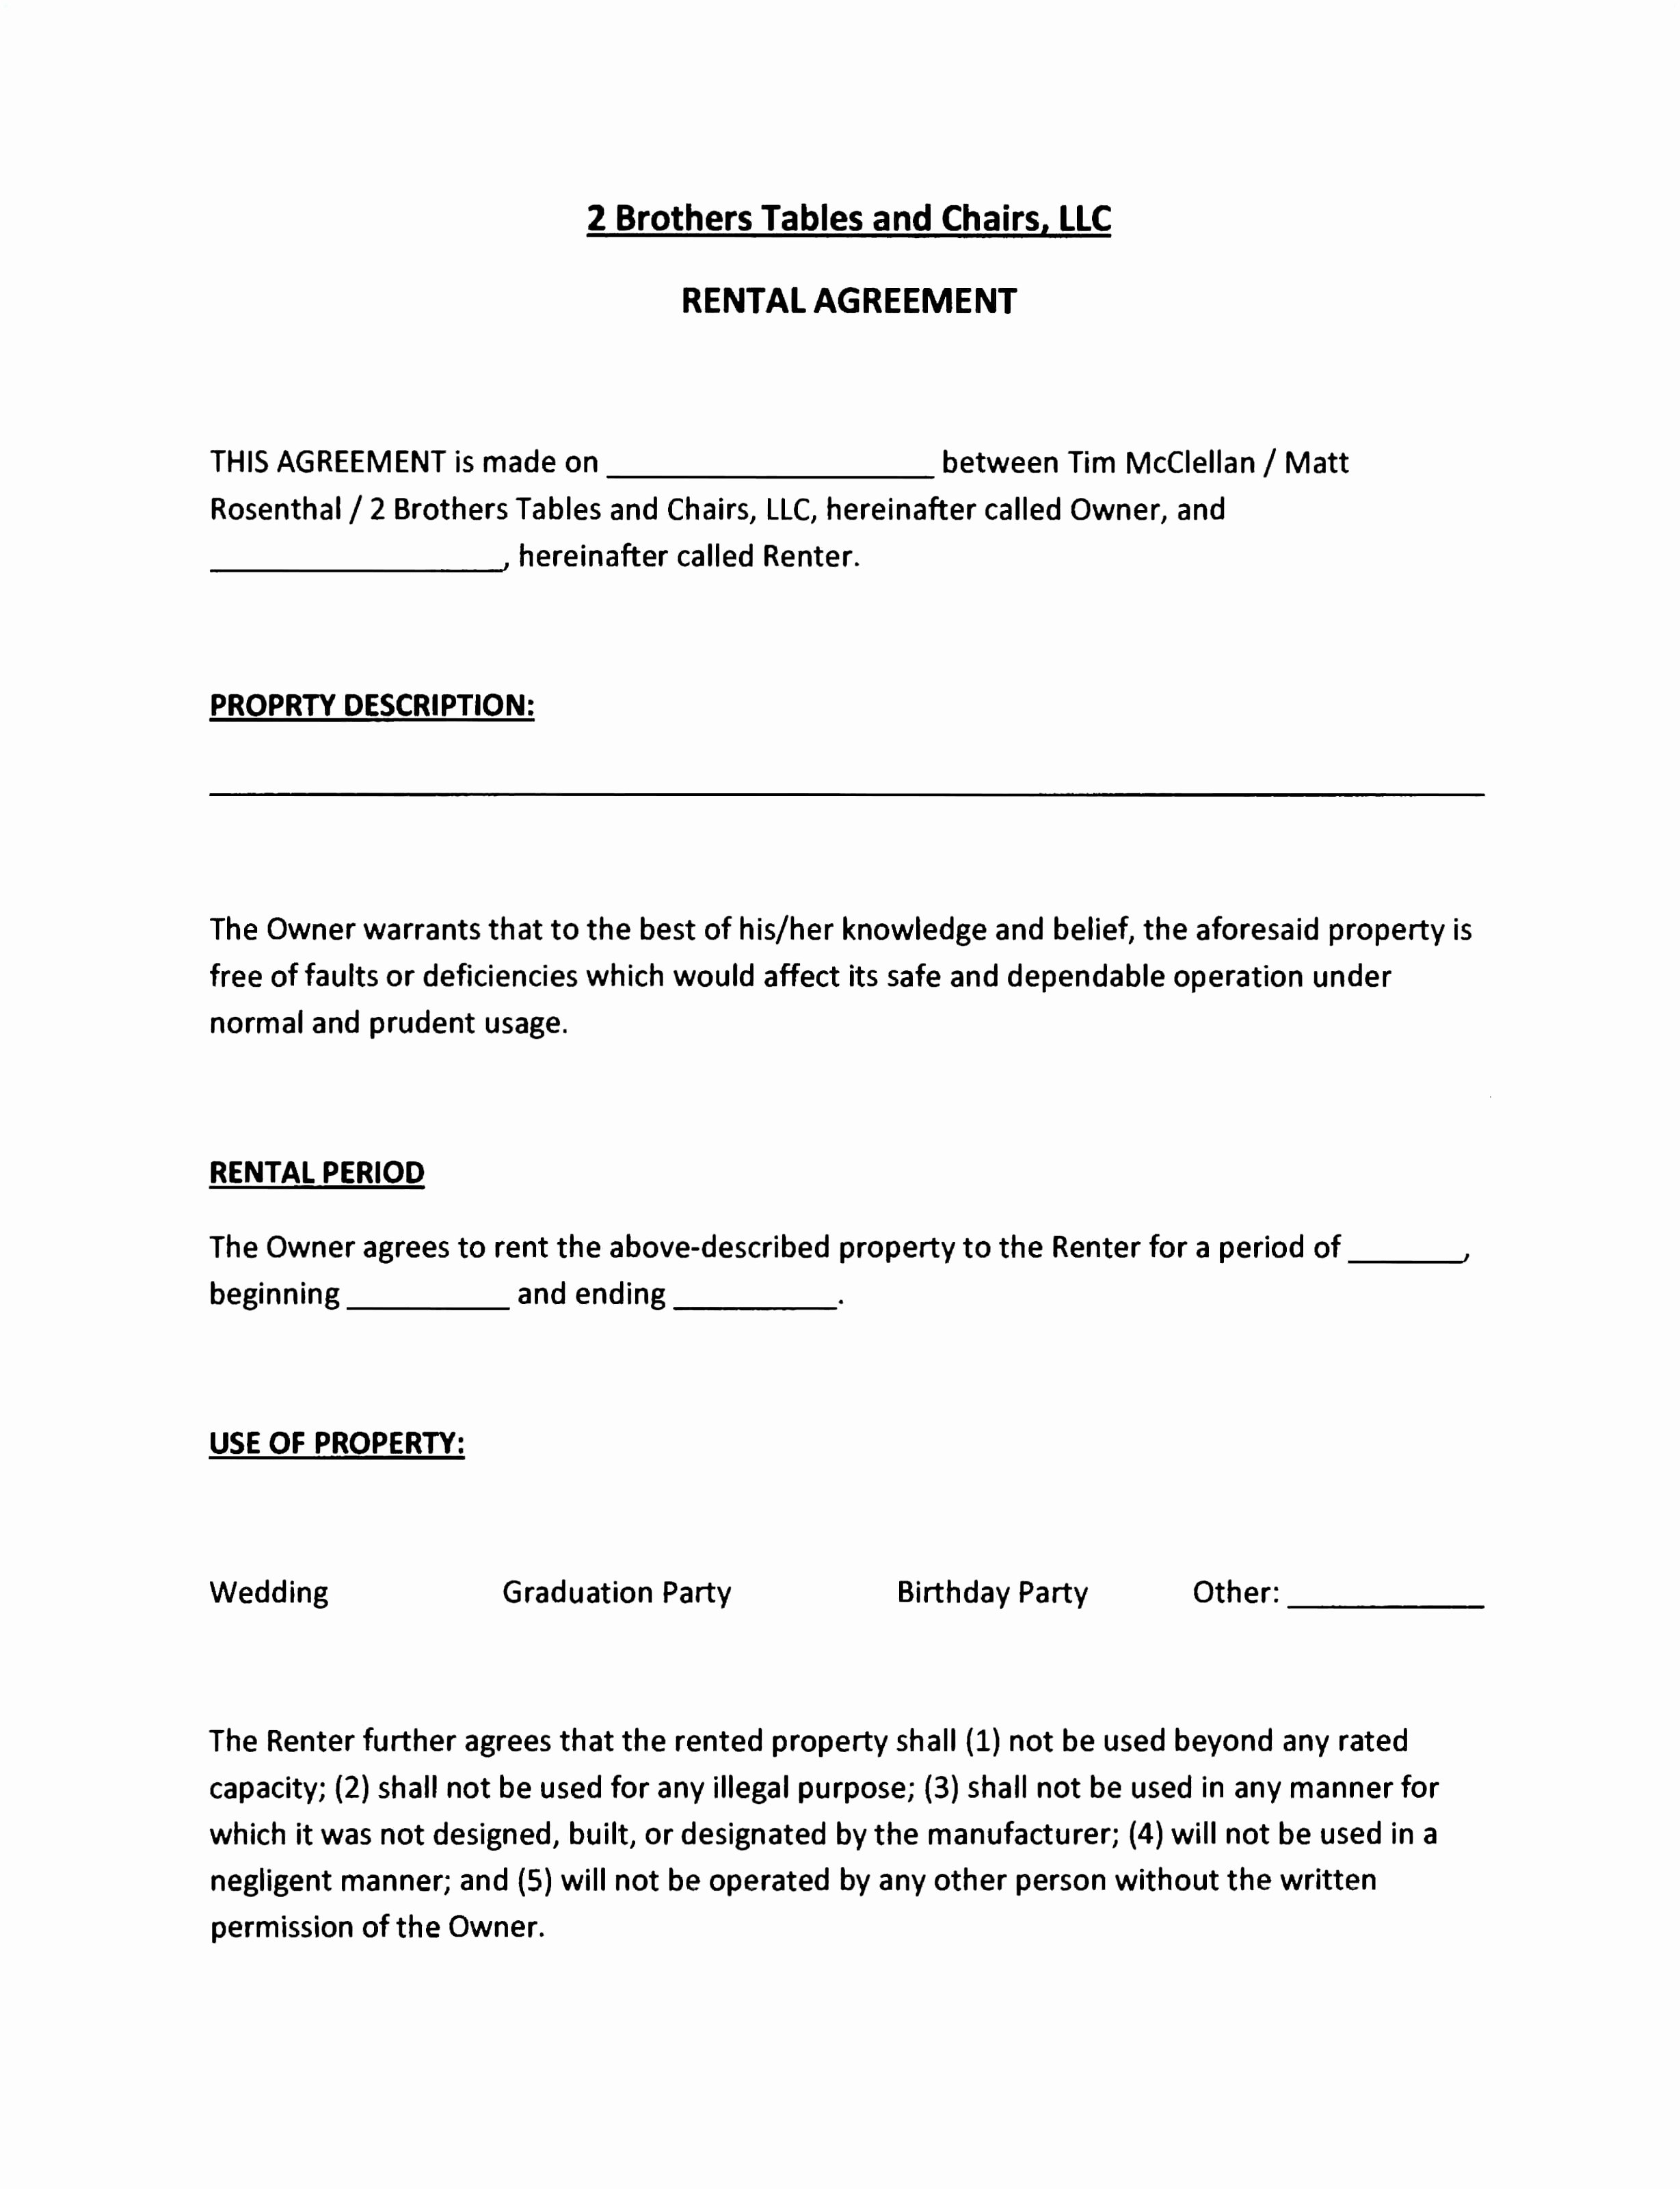 Parking Space Lease Agreement Inspirational 5 Parking Space Lease Agreement Template Ayvyu